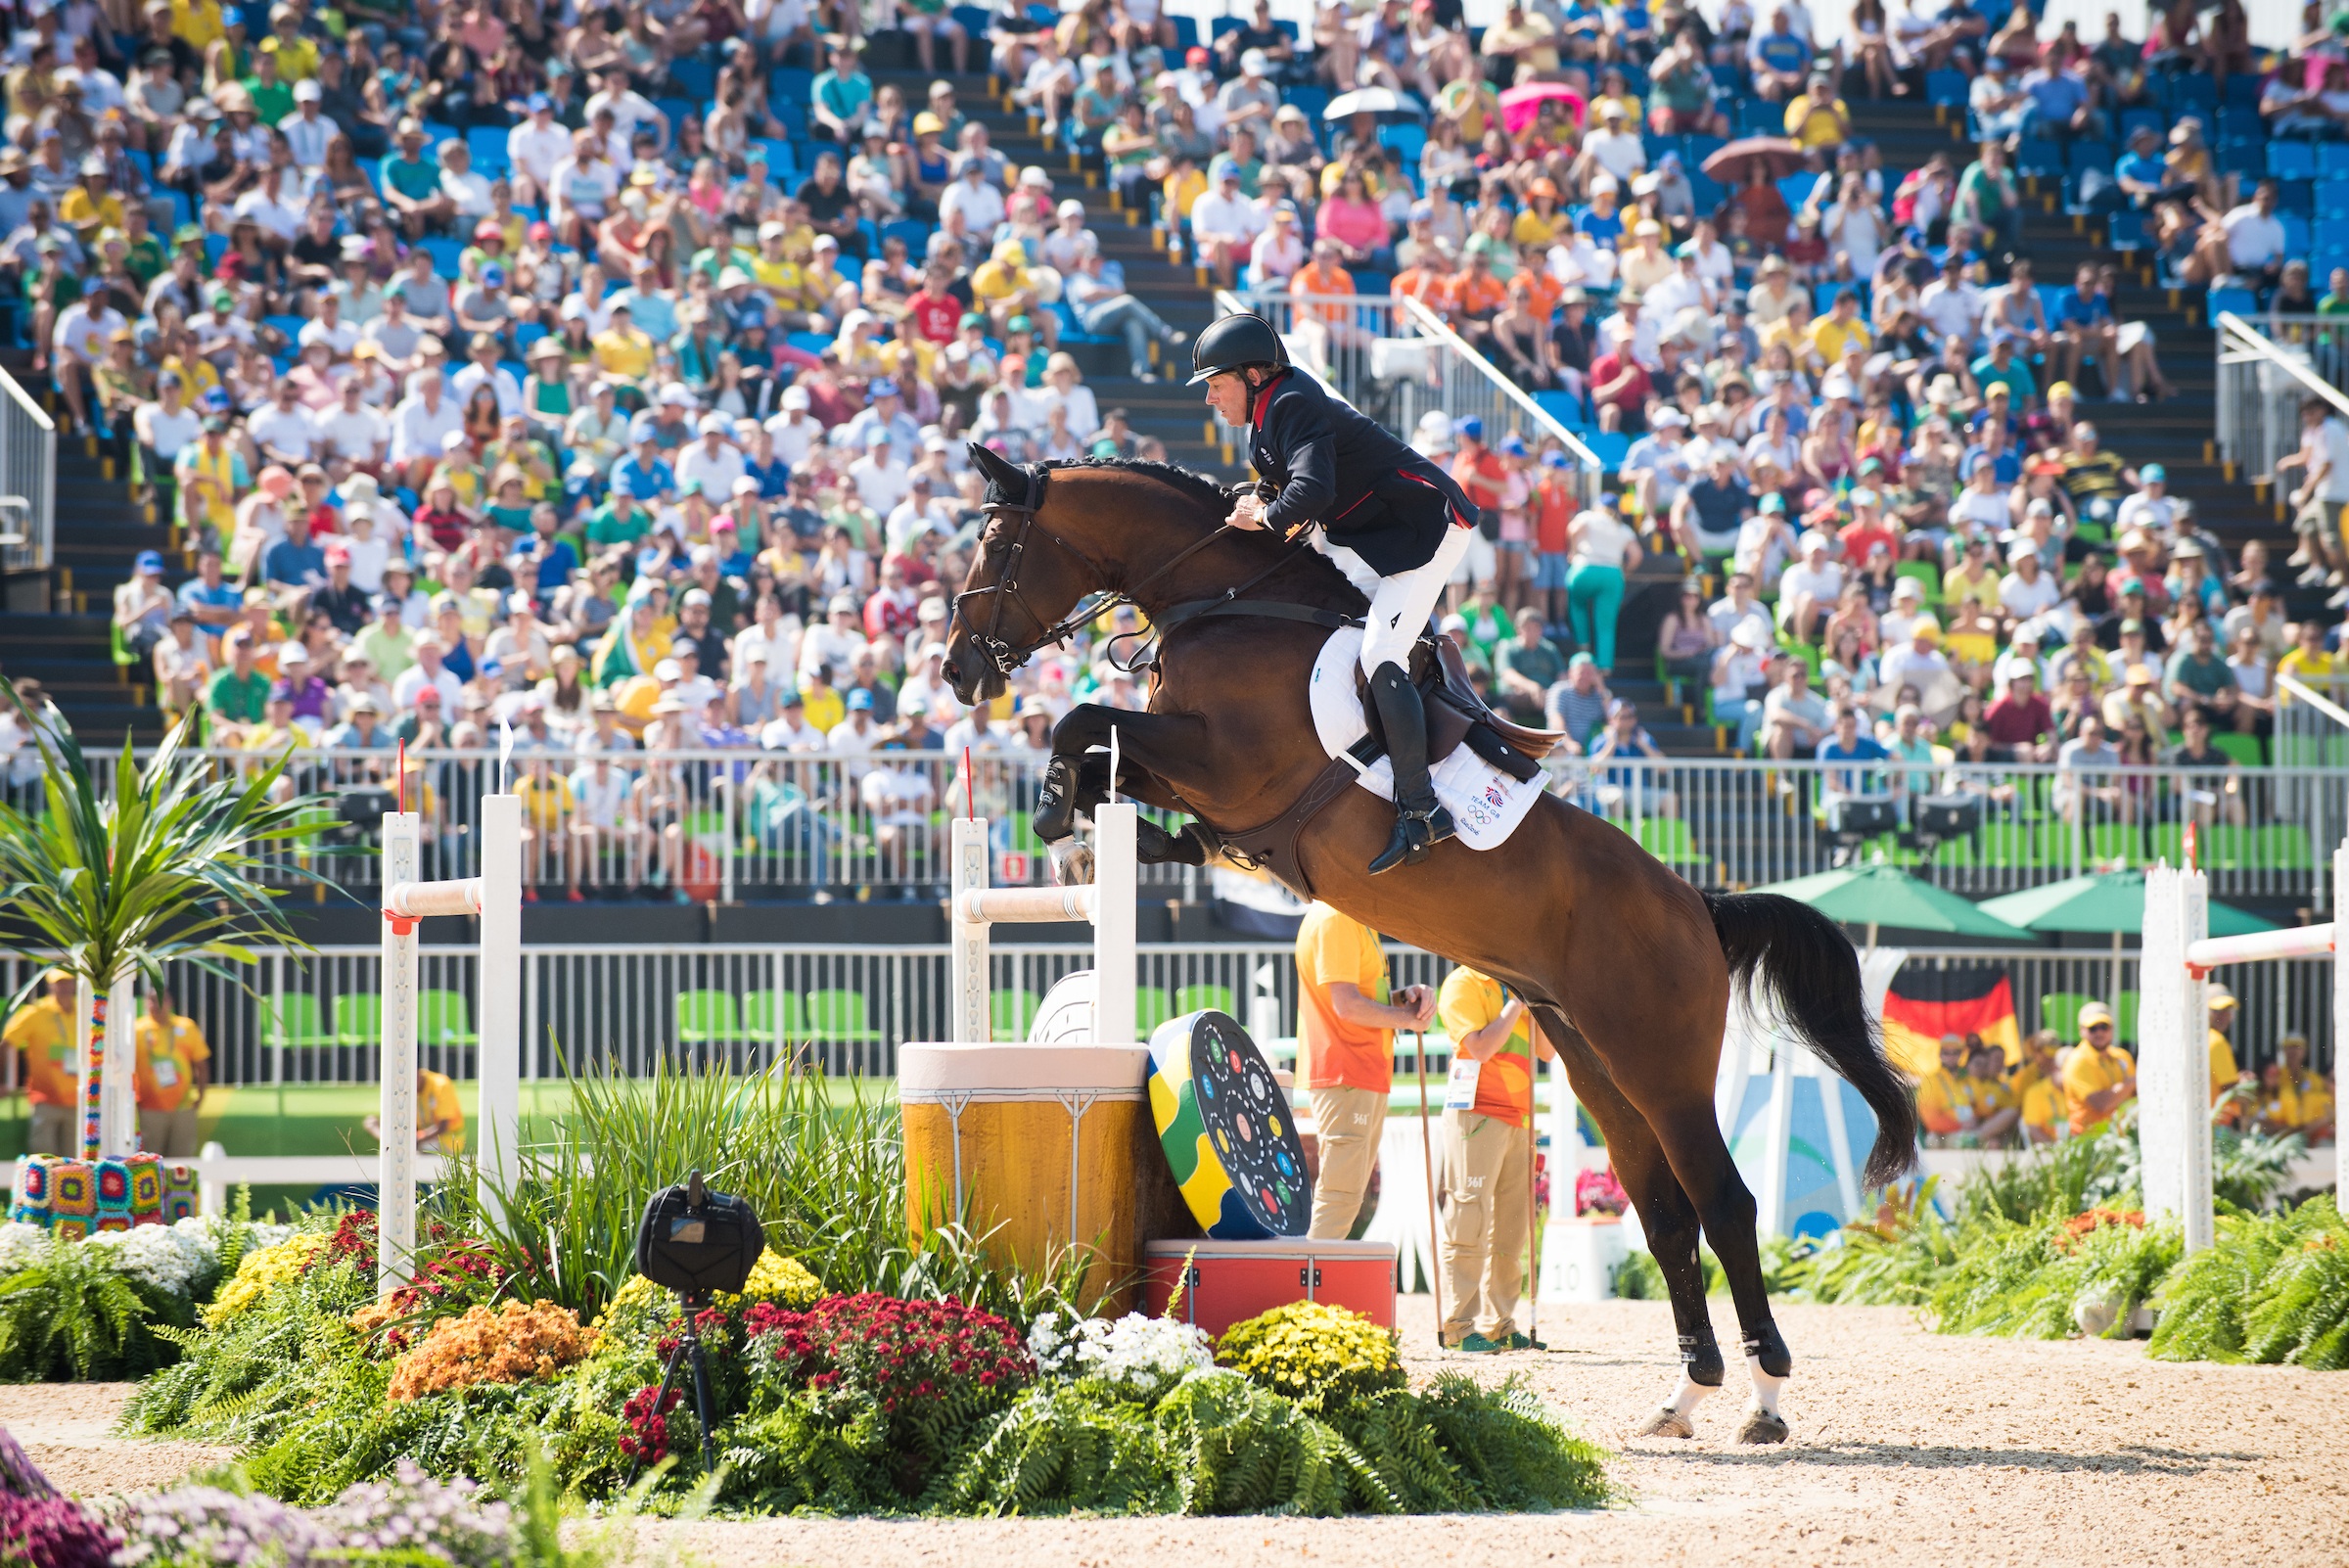 Nick Skelton will ride in tomorrows Individual Finals with Big Star (BEF/Jon Stroud Media)